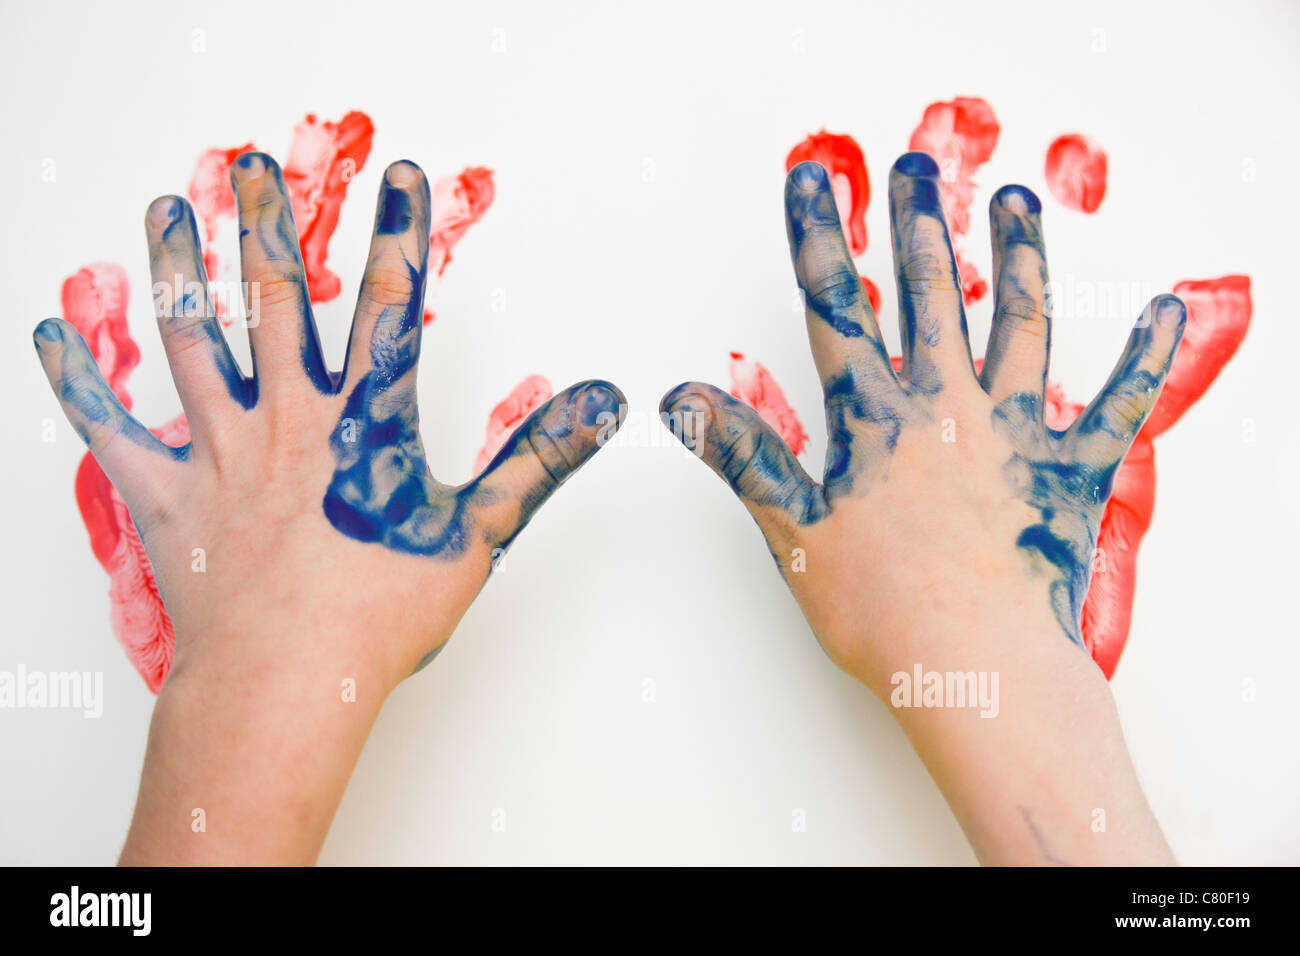 A child painting with his hands and fingers - Stock Image